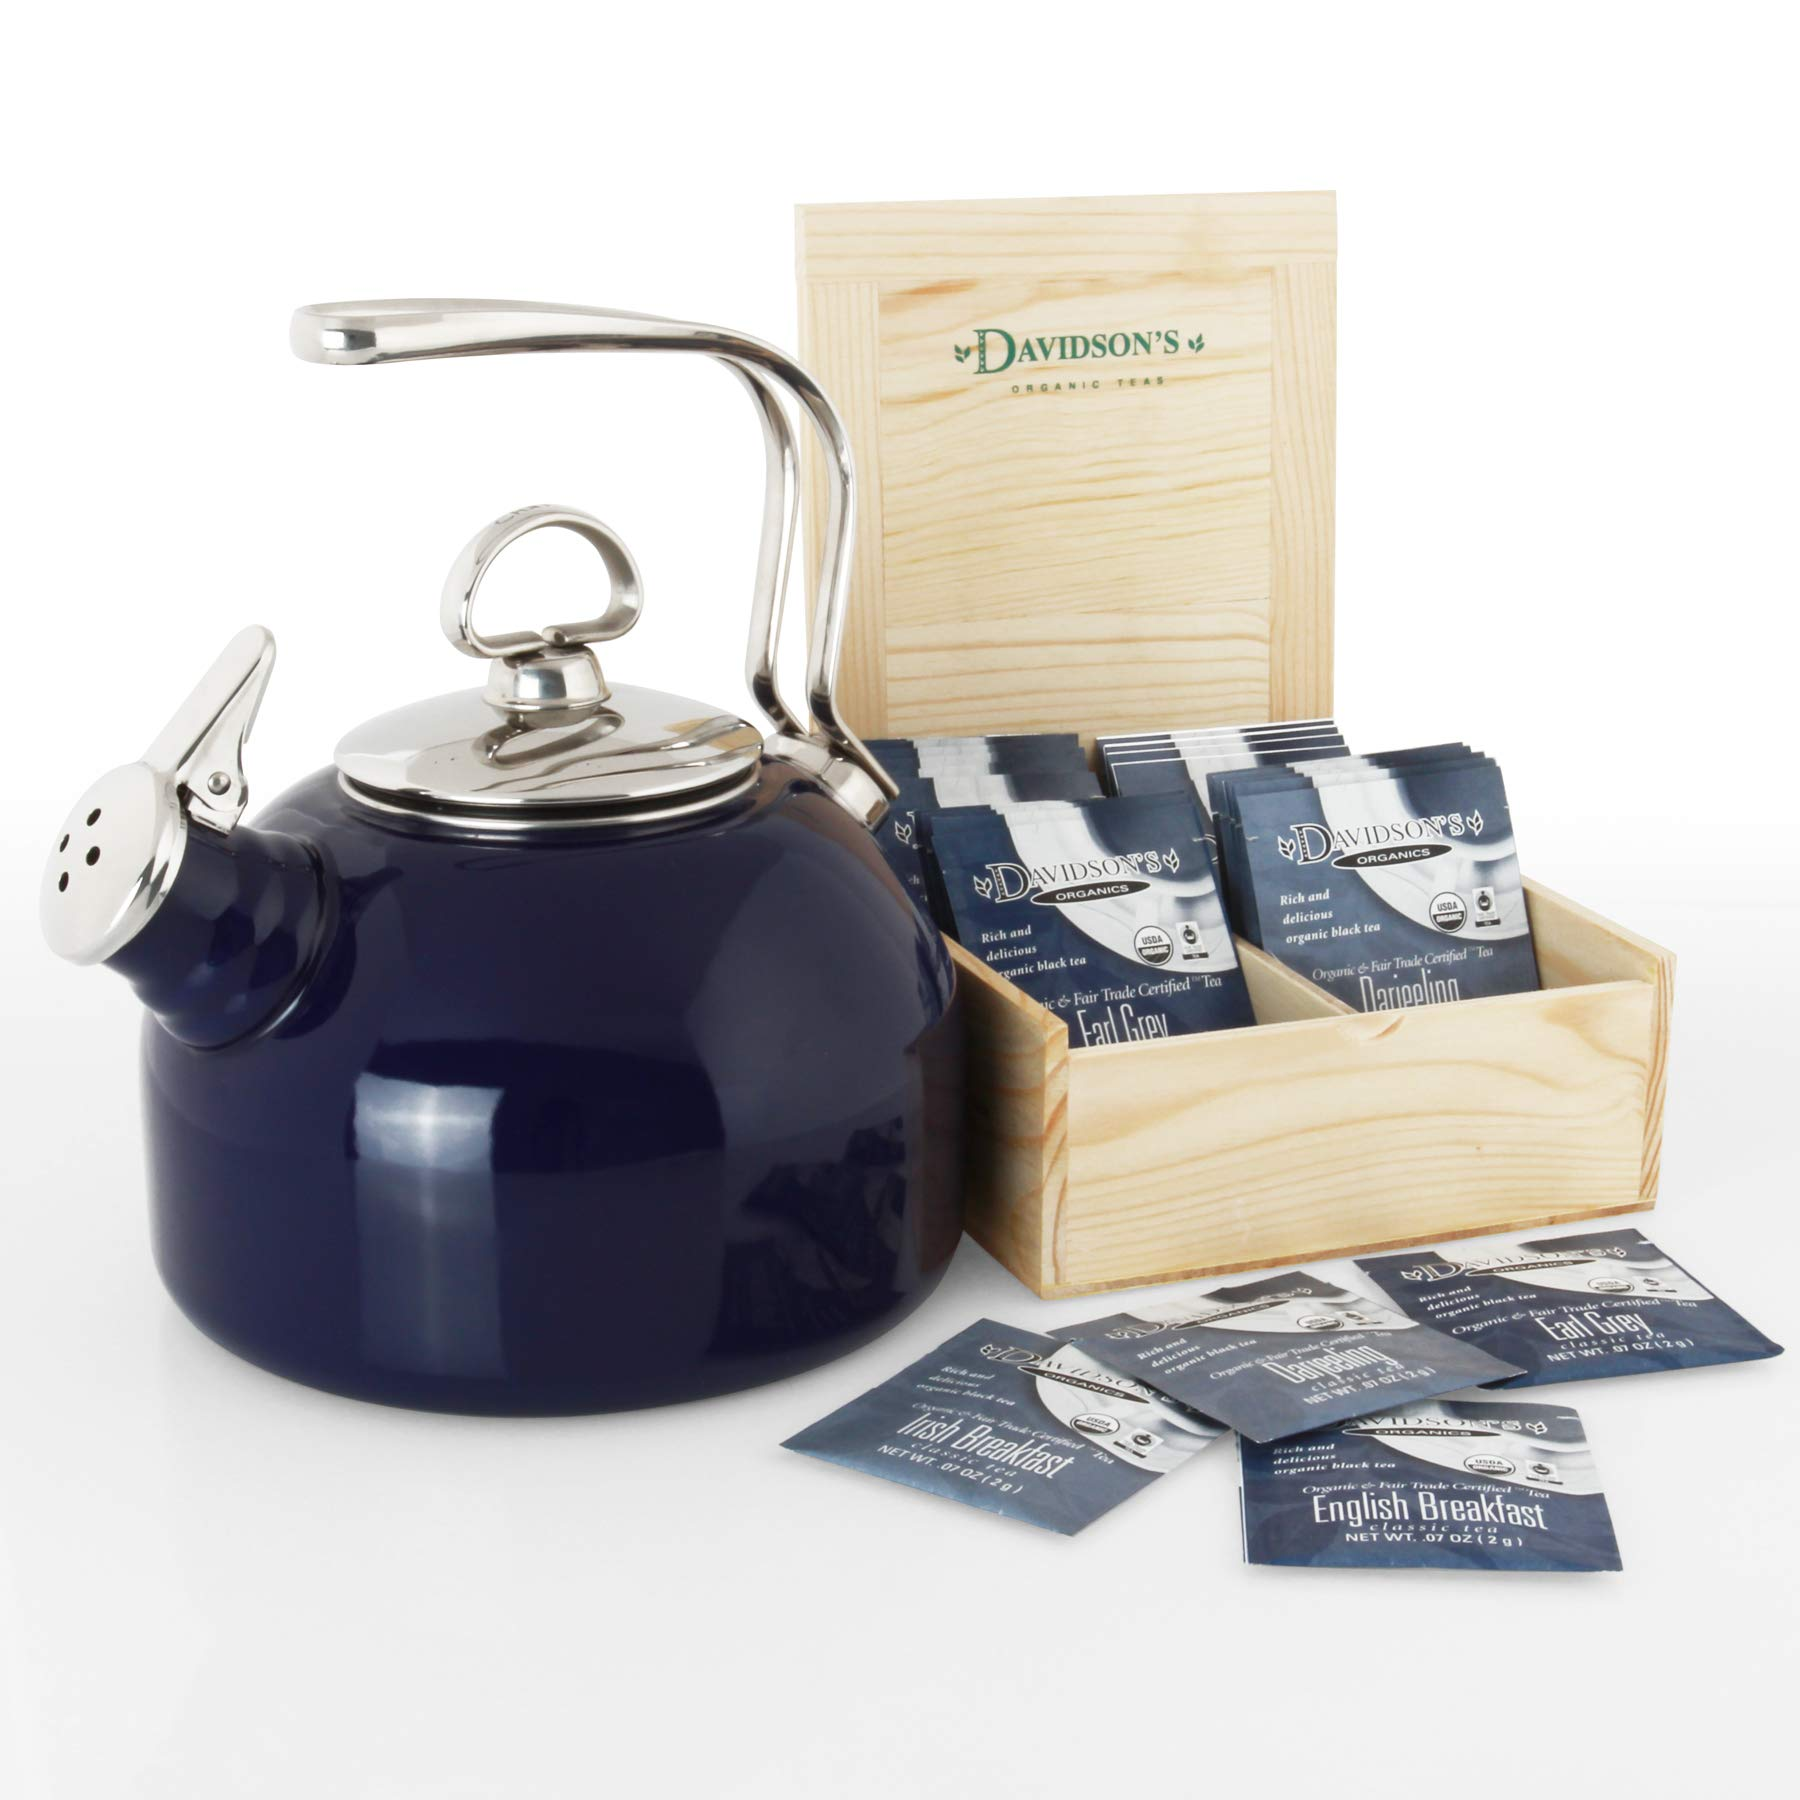 Chantal 37-18S BL Classic Teakettle with free Davidsons Tea Gift Box 1.8 Qt Cobalt Blue